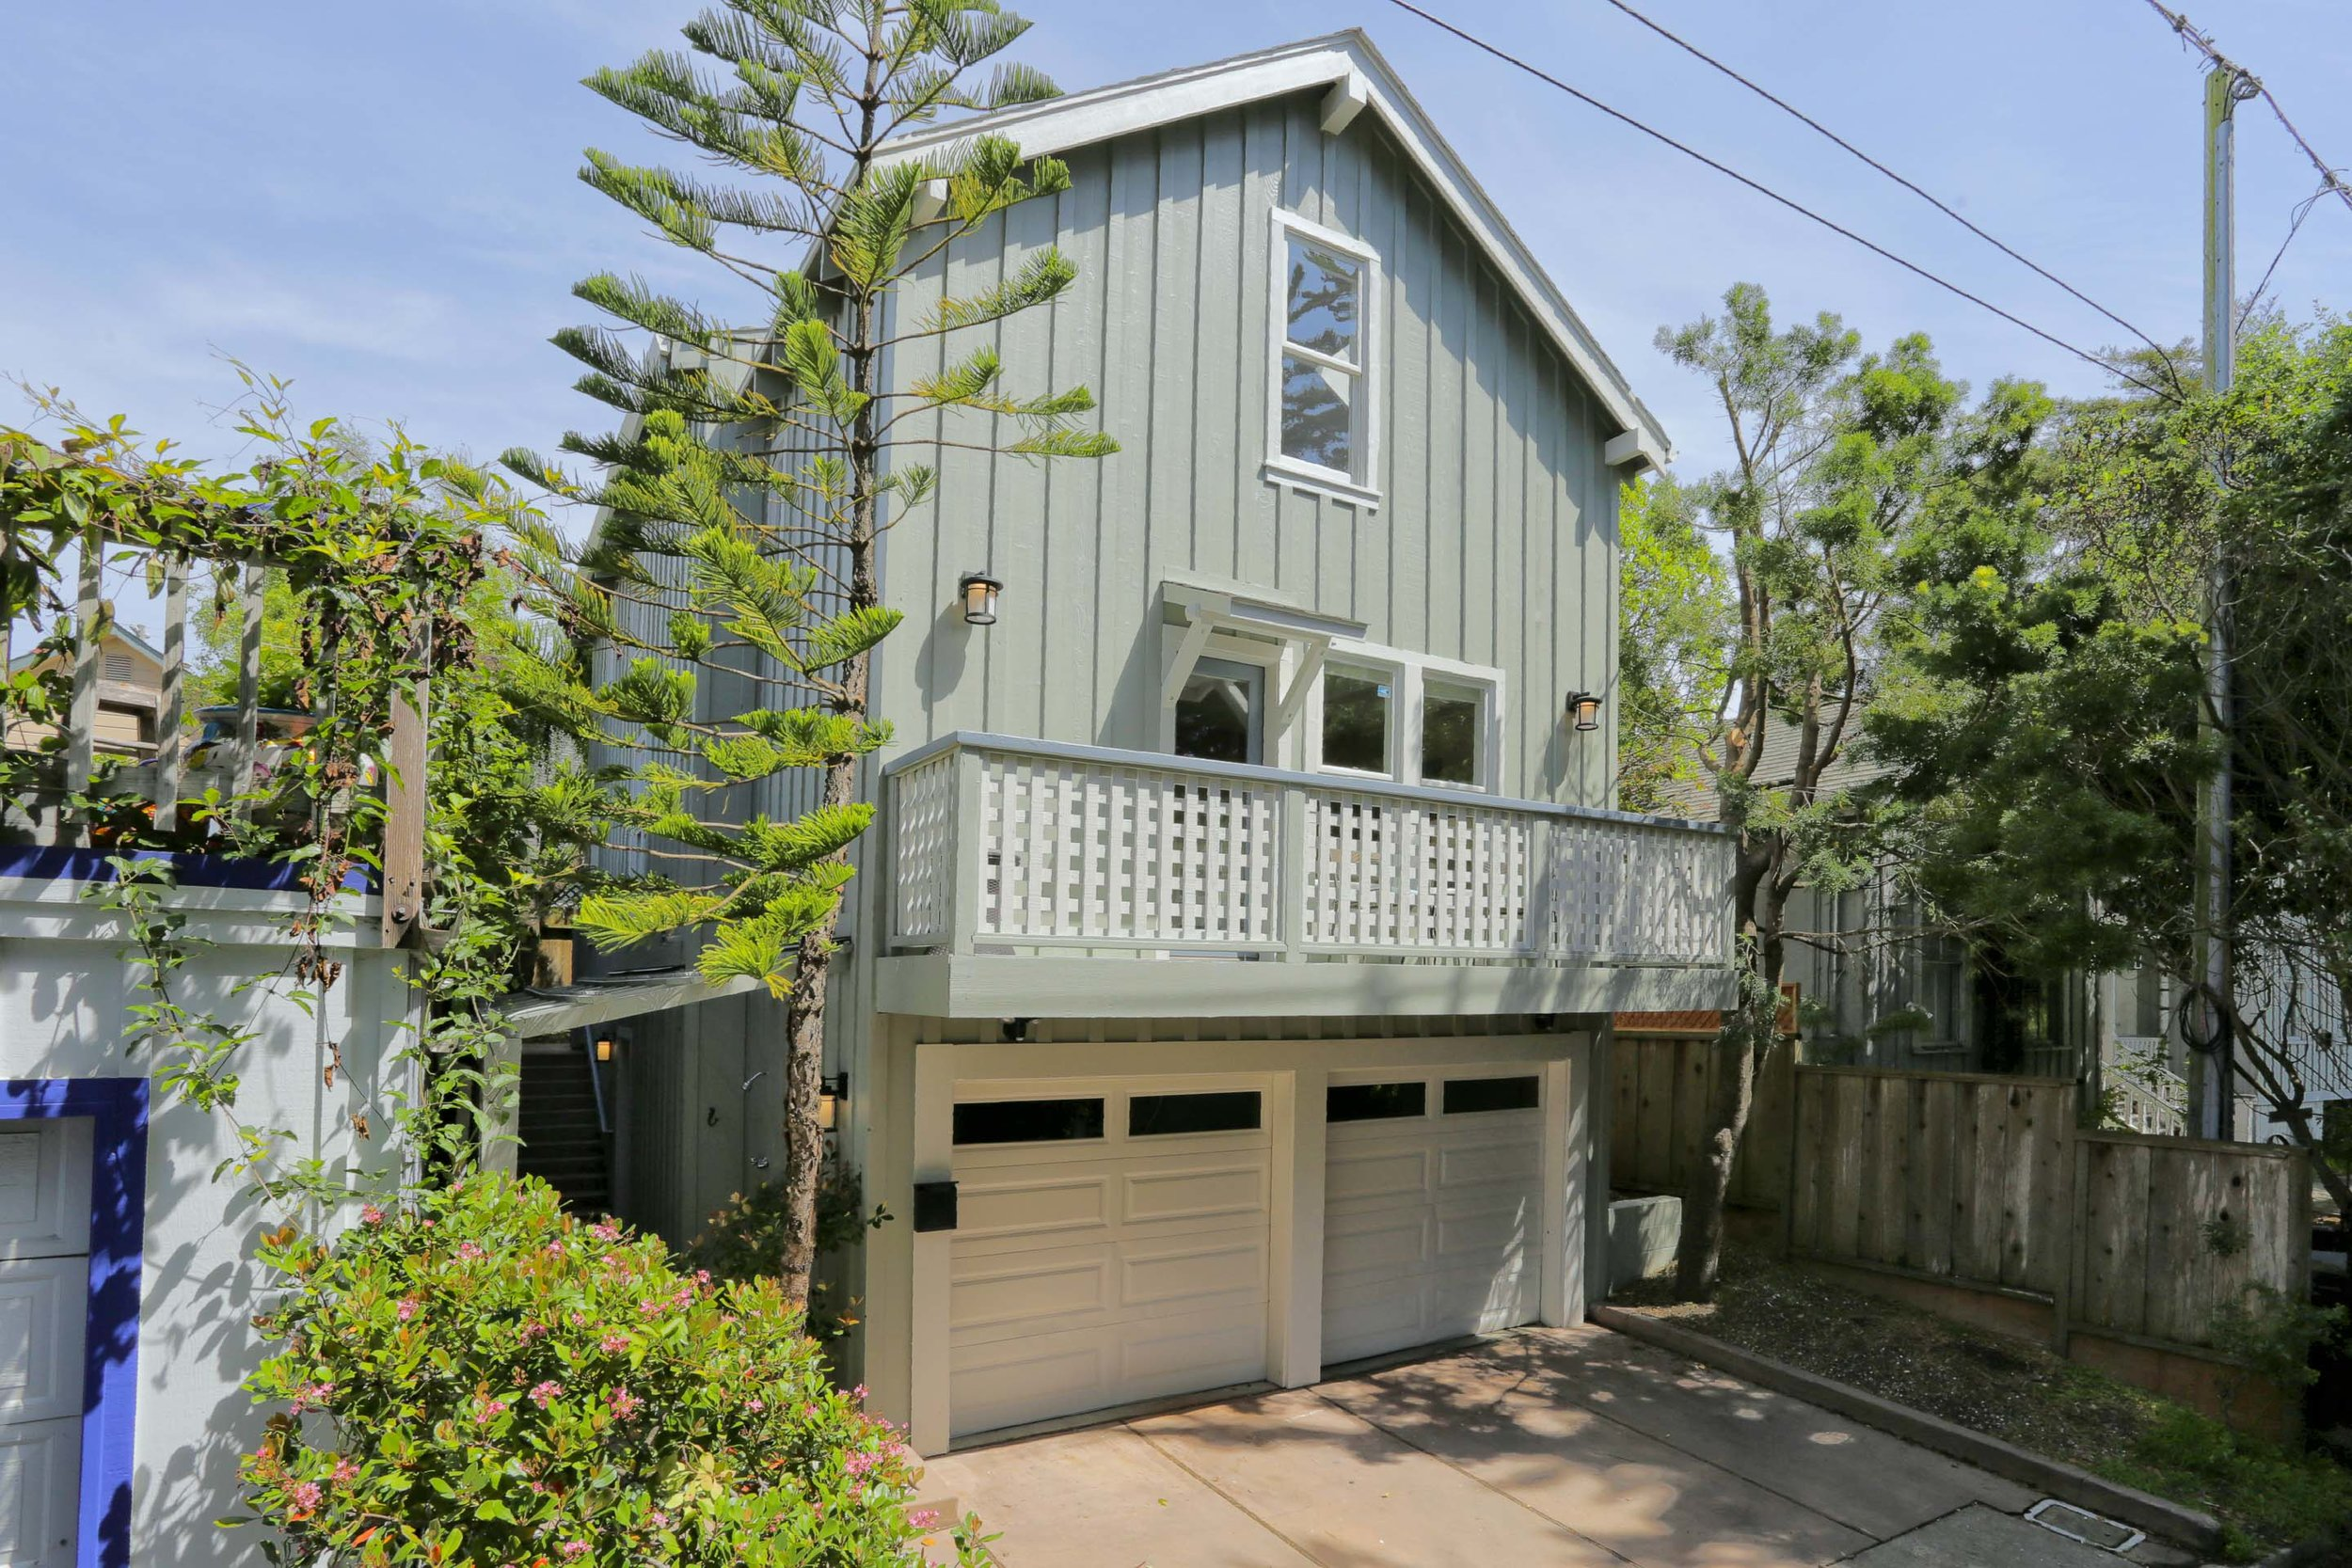 NEW: New and improved, completely remodeled inside and out, Beach Haven at Seabright.